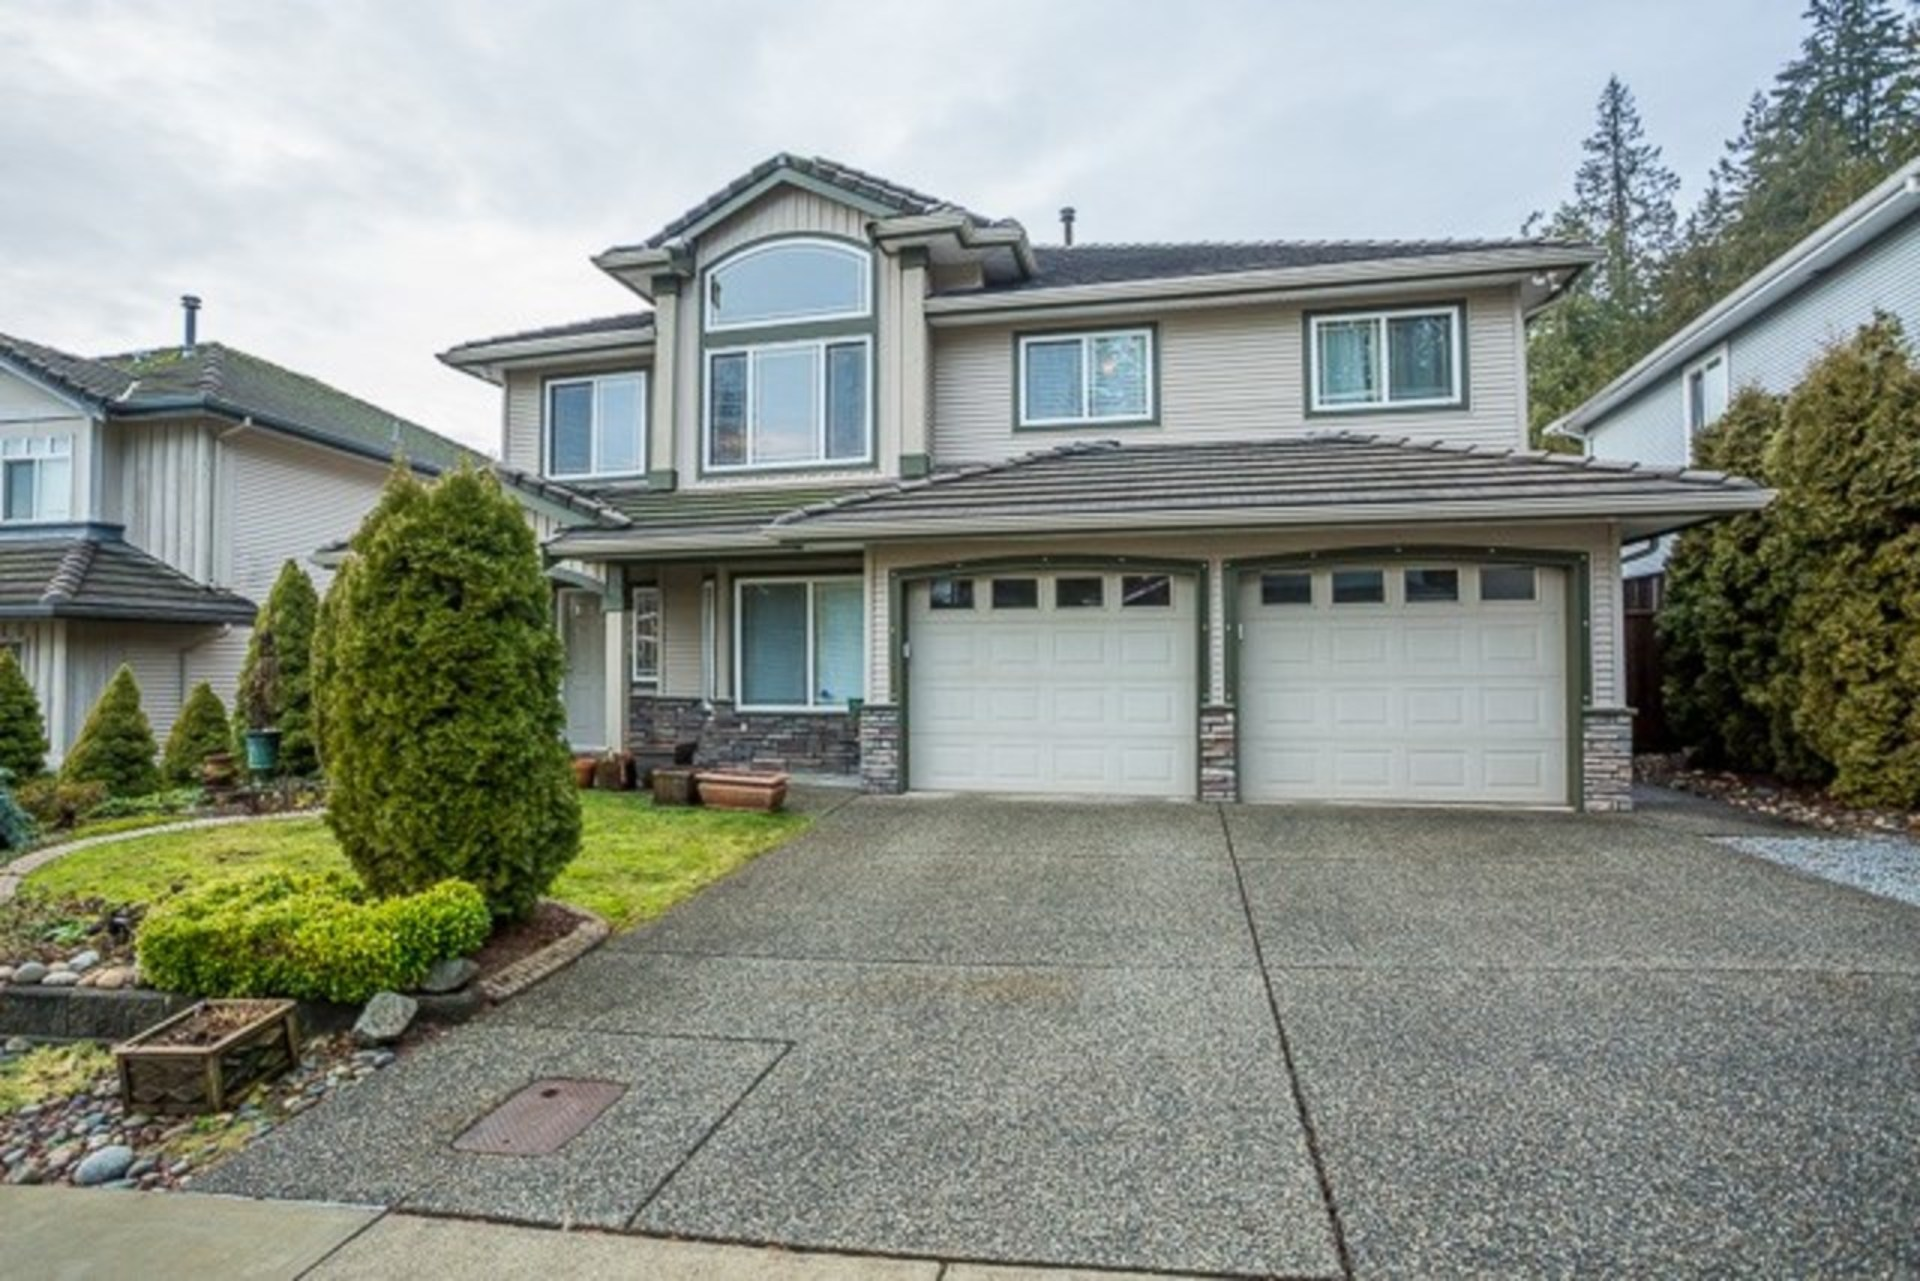 13385-237a-street-silver-valley-maple-ridge-01 at 13385 237a Street, Silver Valley, Maple Ridge